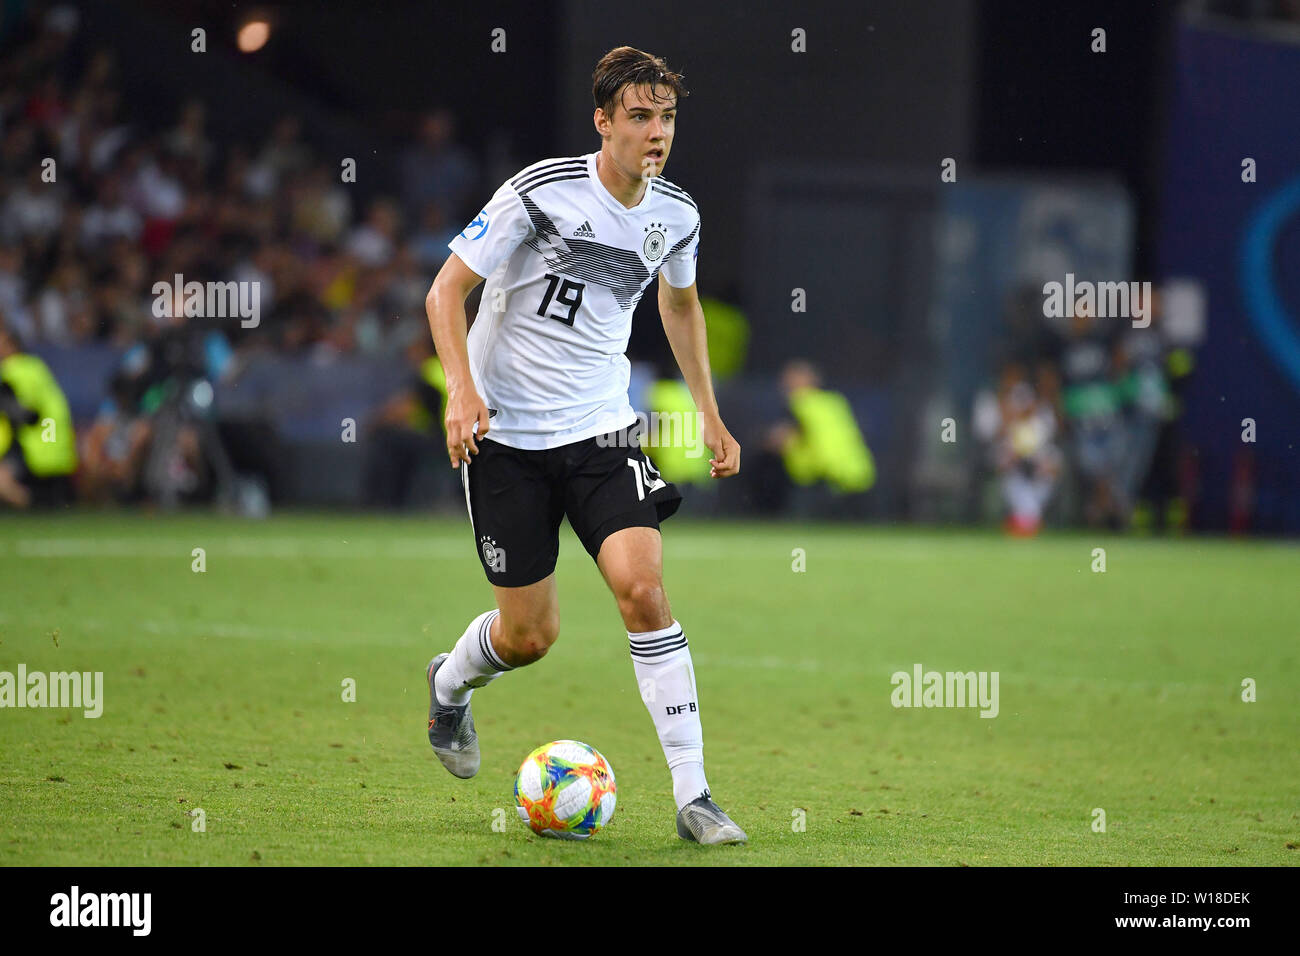 Udine, Italien. 30th June, 2019. Florian NEUHAUS (GER), action, single action, single image, cut out, full body shot, whole figure. Spain (ESP) - Germany (GER) 2-1, at 30.06.2019 Stadio Friuli Udine. Football U-21, FINALE UEFA Under21 European Championship in Italy/SanMarino from 16.-30.06.2019. | Usage worldwide Credit: dpa/Alamy Live News - Stock Image